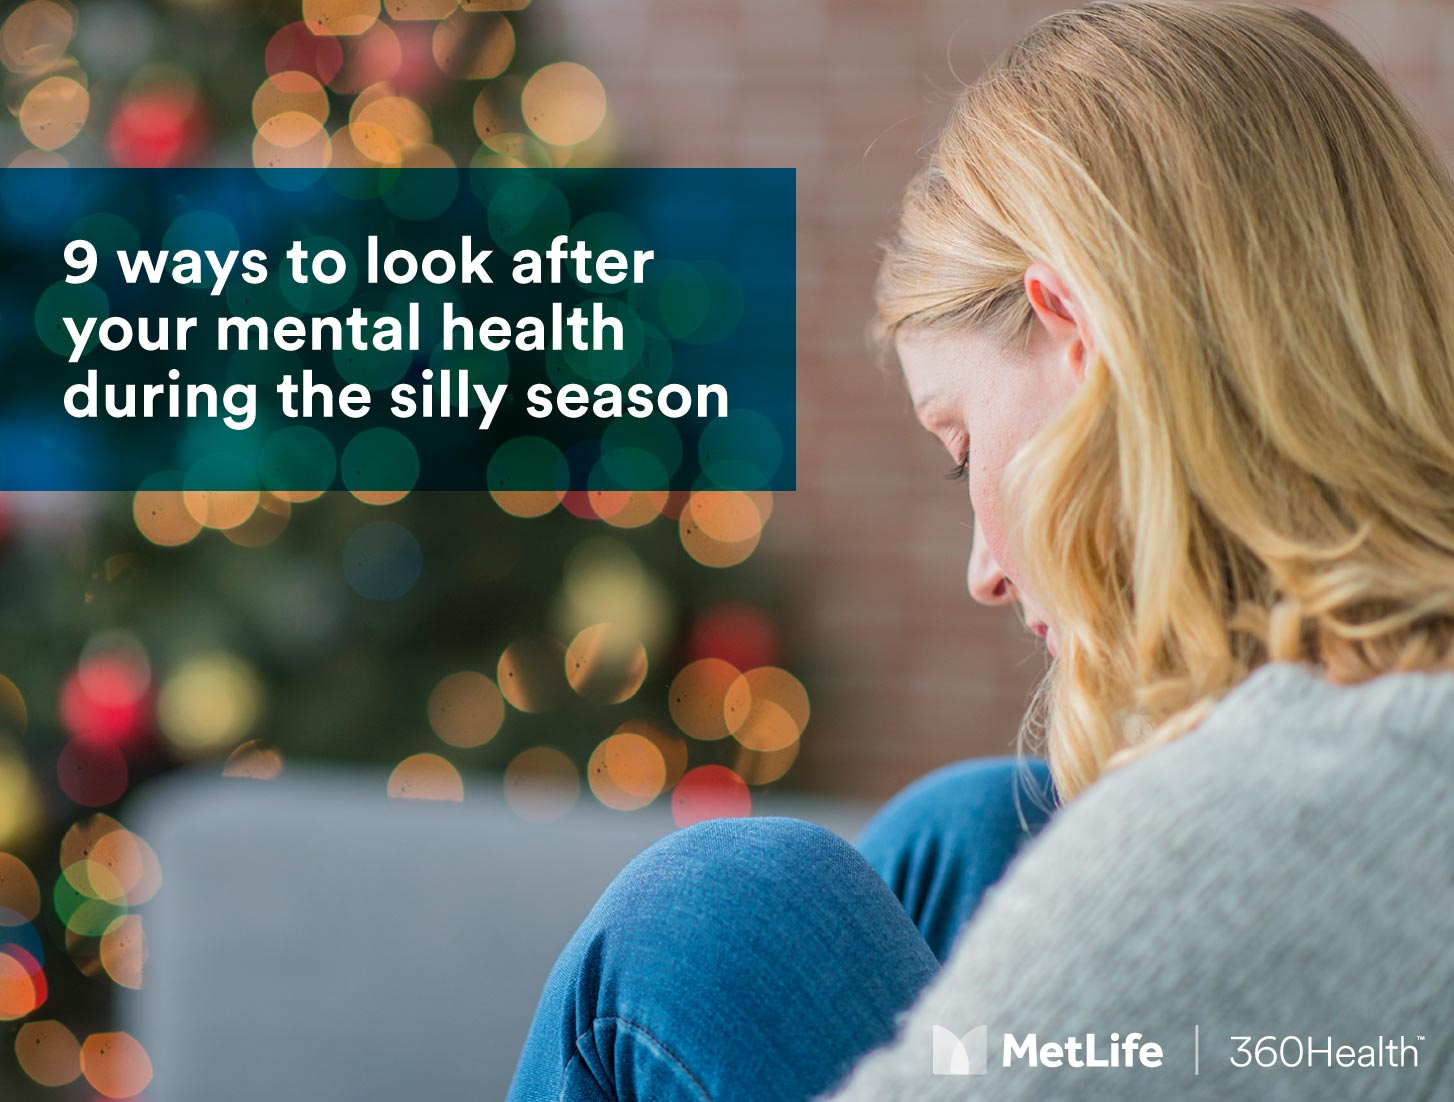 9 ways to look after your mental health during the silly season